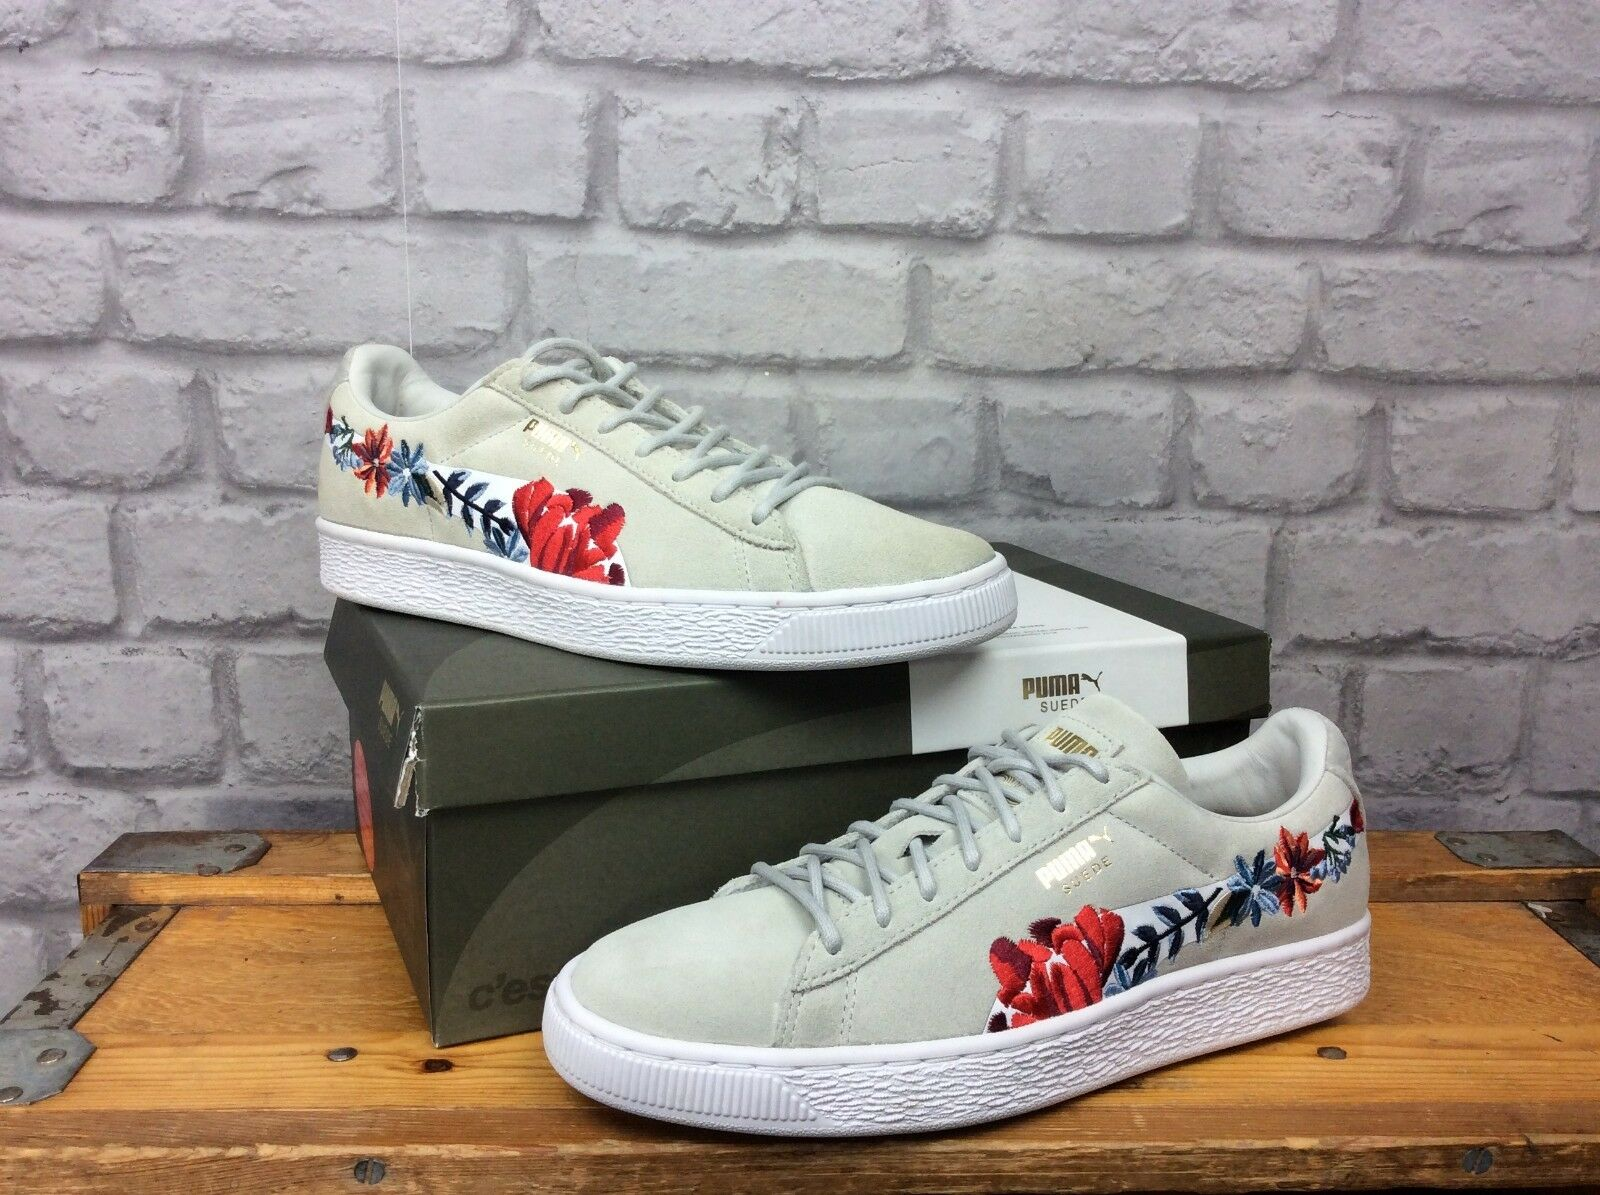 PUMA LADIES LADIES LADIES UK 6 EU 39 SUEDE CLASSIC EMBROIDERED FLORAL LIGHT GREY TRAINERS 0f6f2a